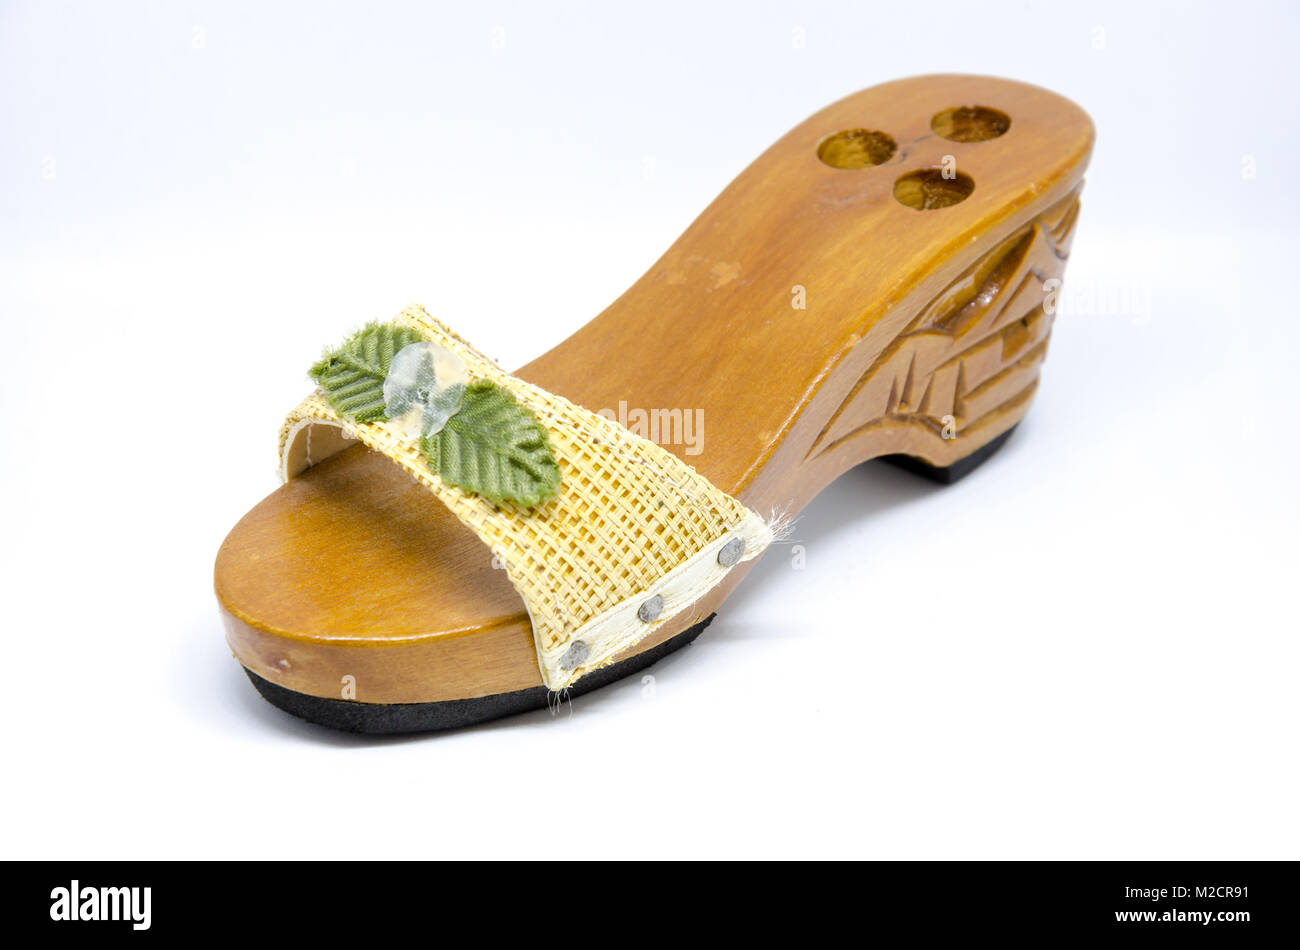 A decorative pen holder in the form of a ladiy's shoe. - Stock Image